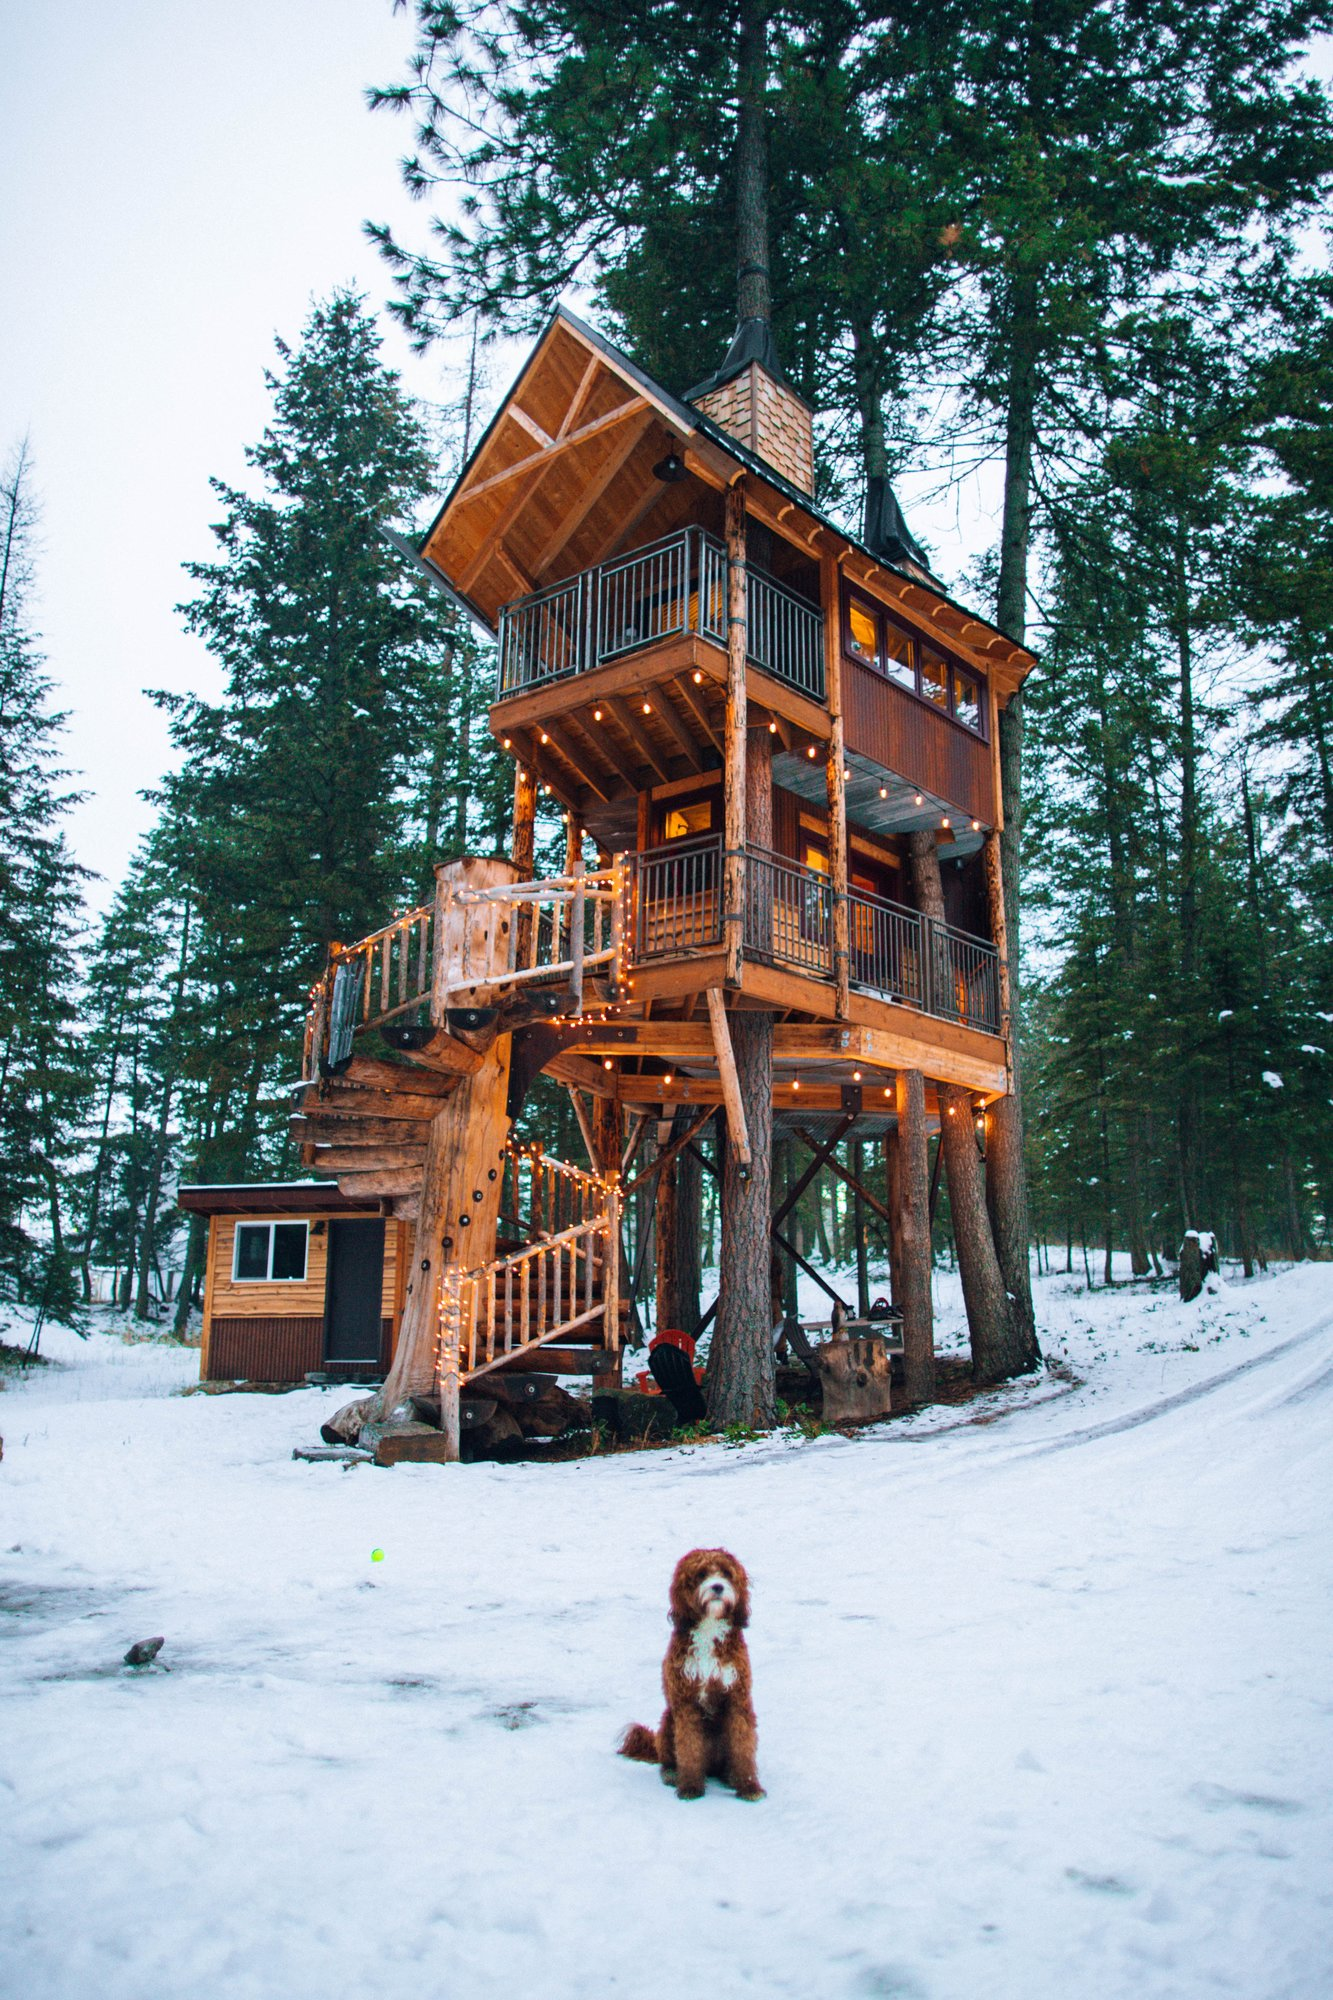 The Coolest Treehouses Available for Rent on Airbnb